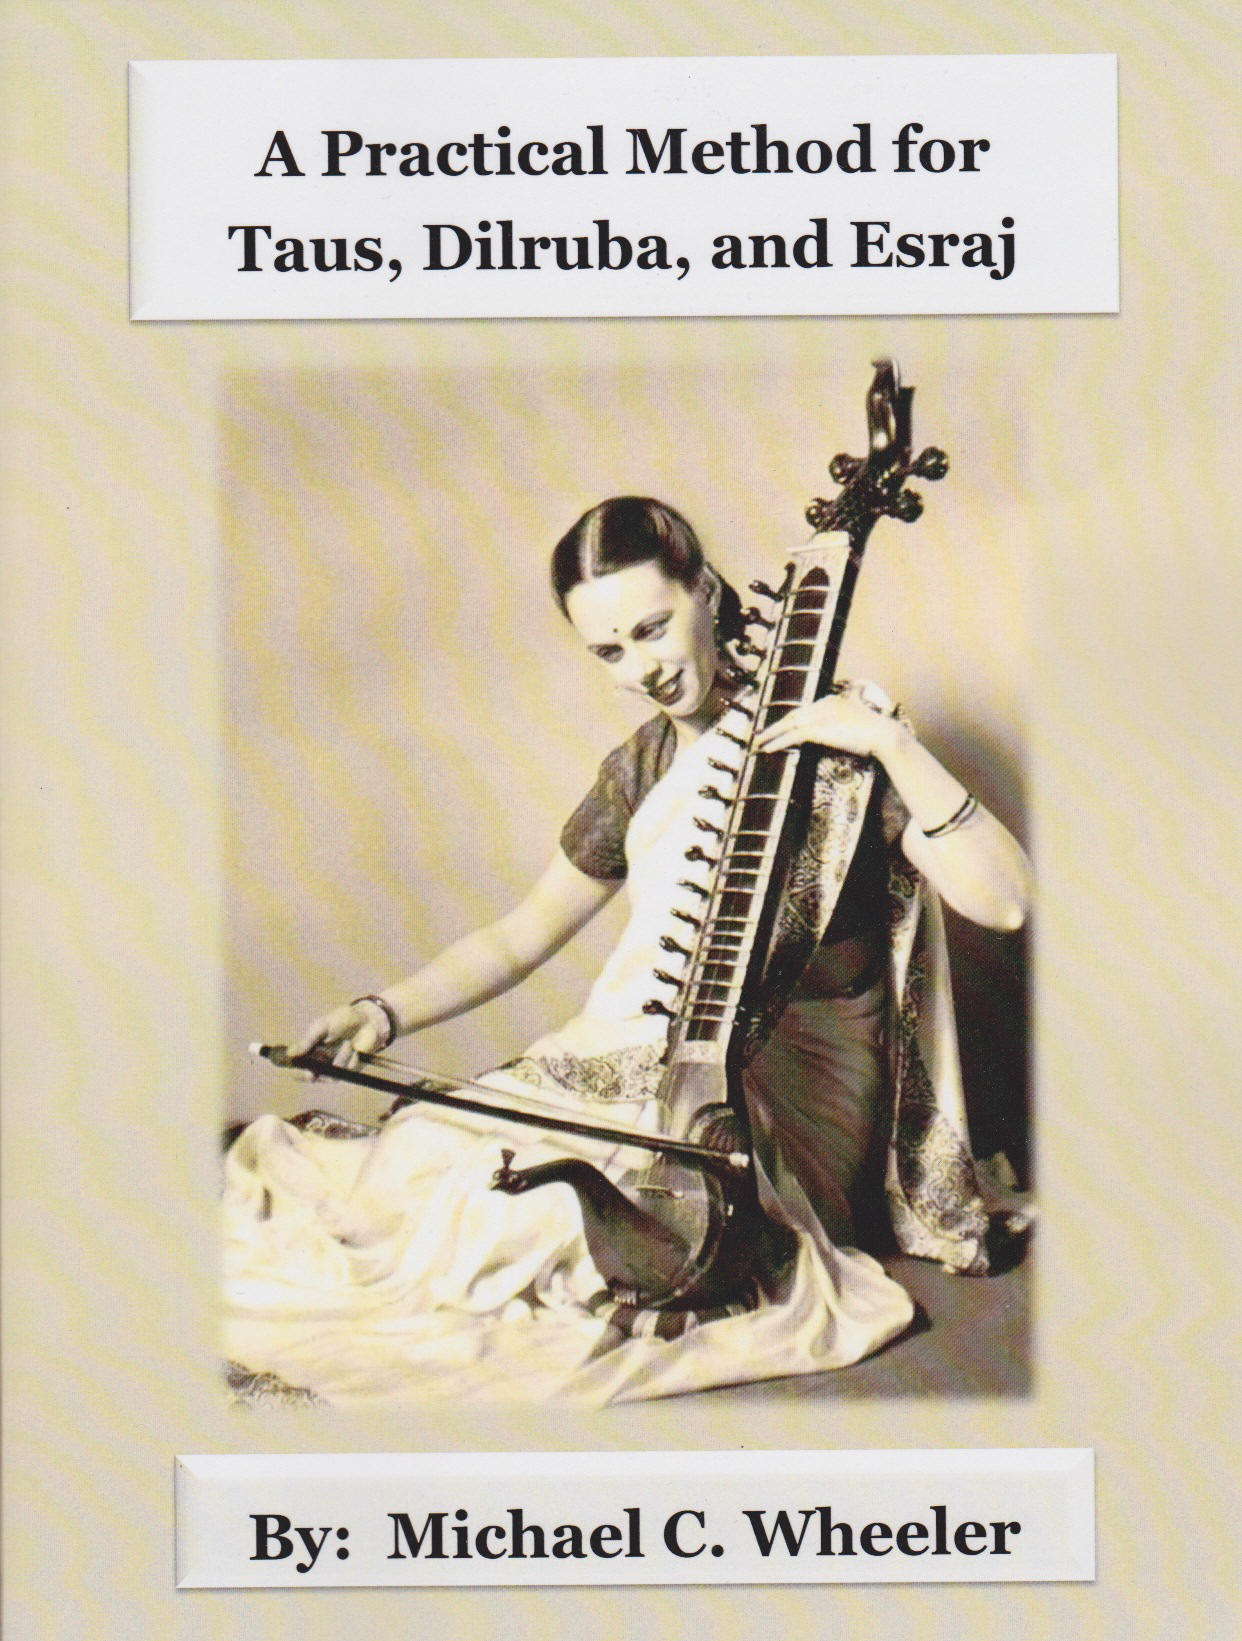 Dilruba Esraj Taus instruction book